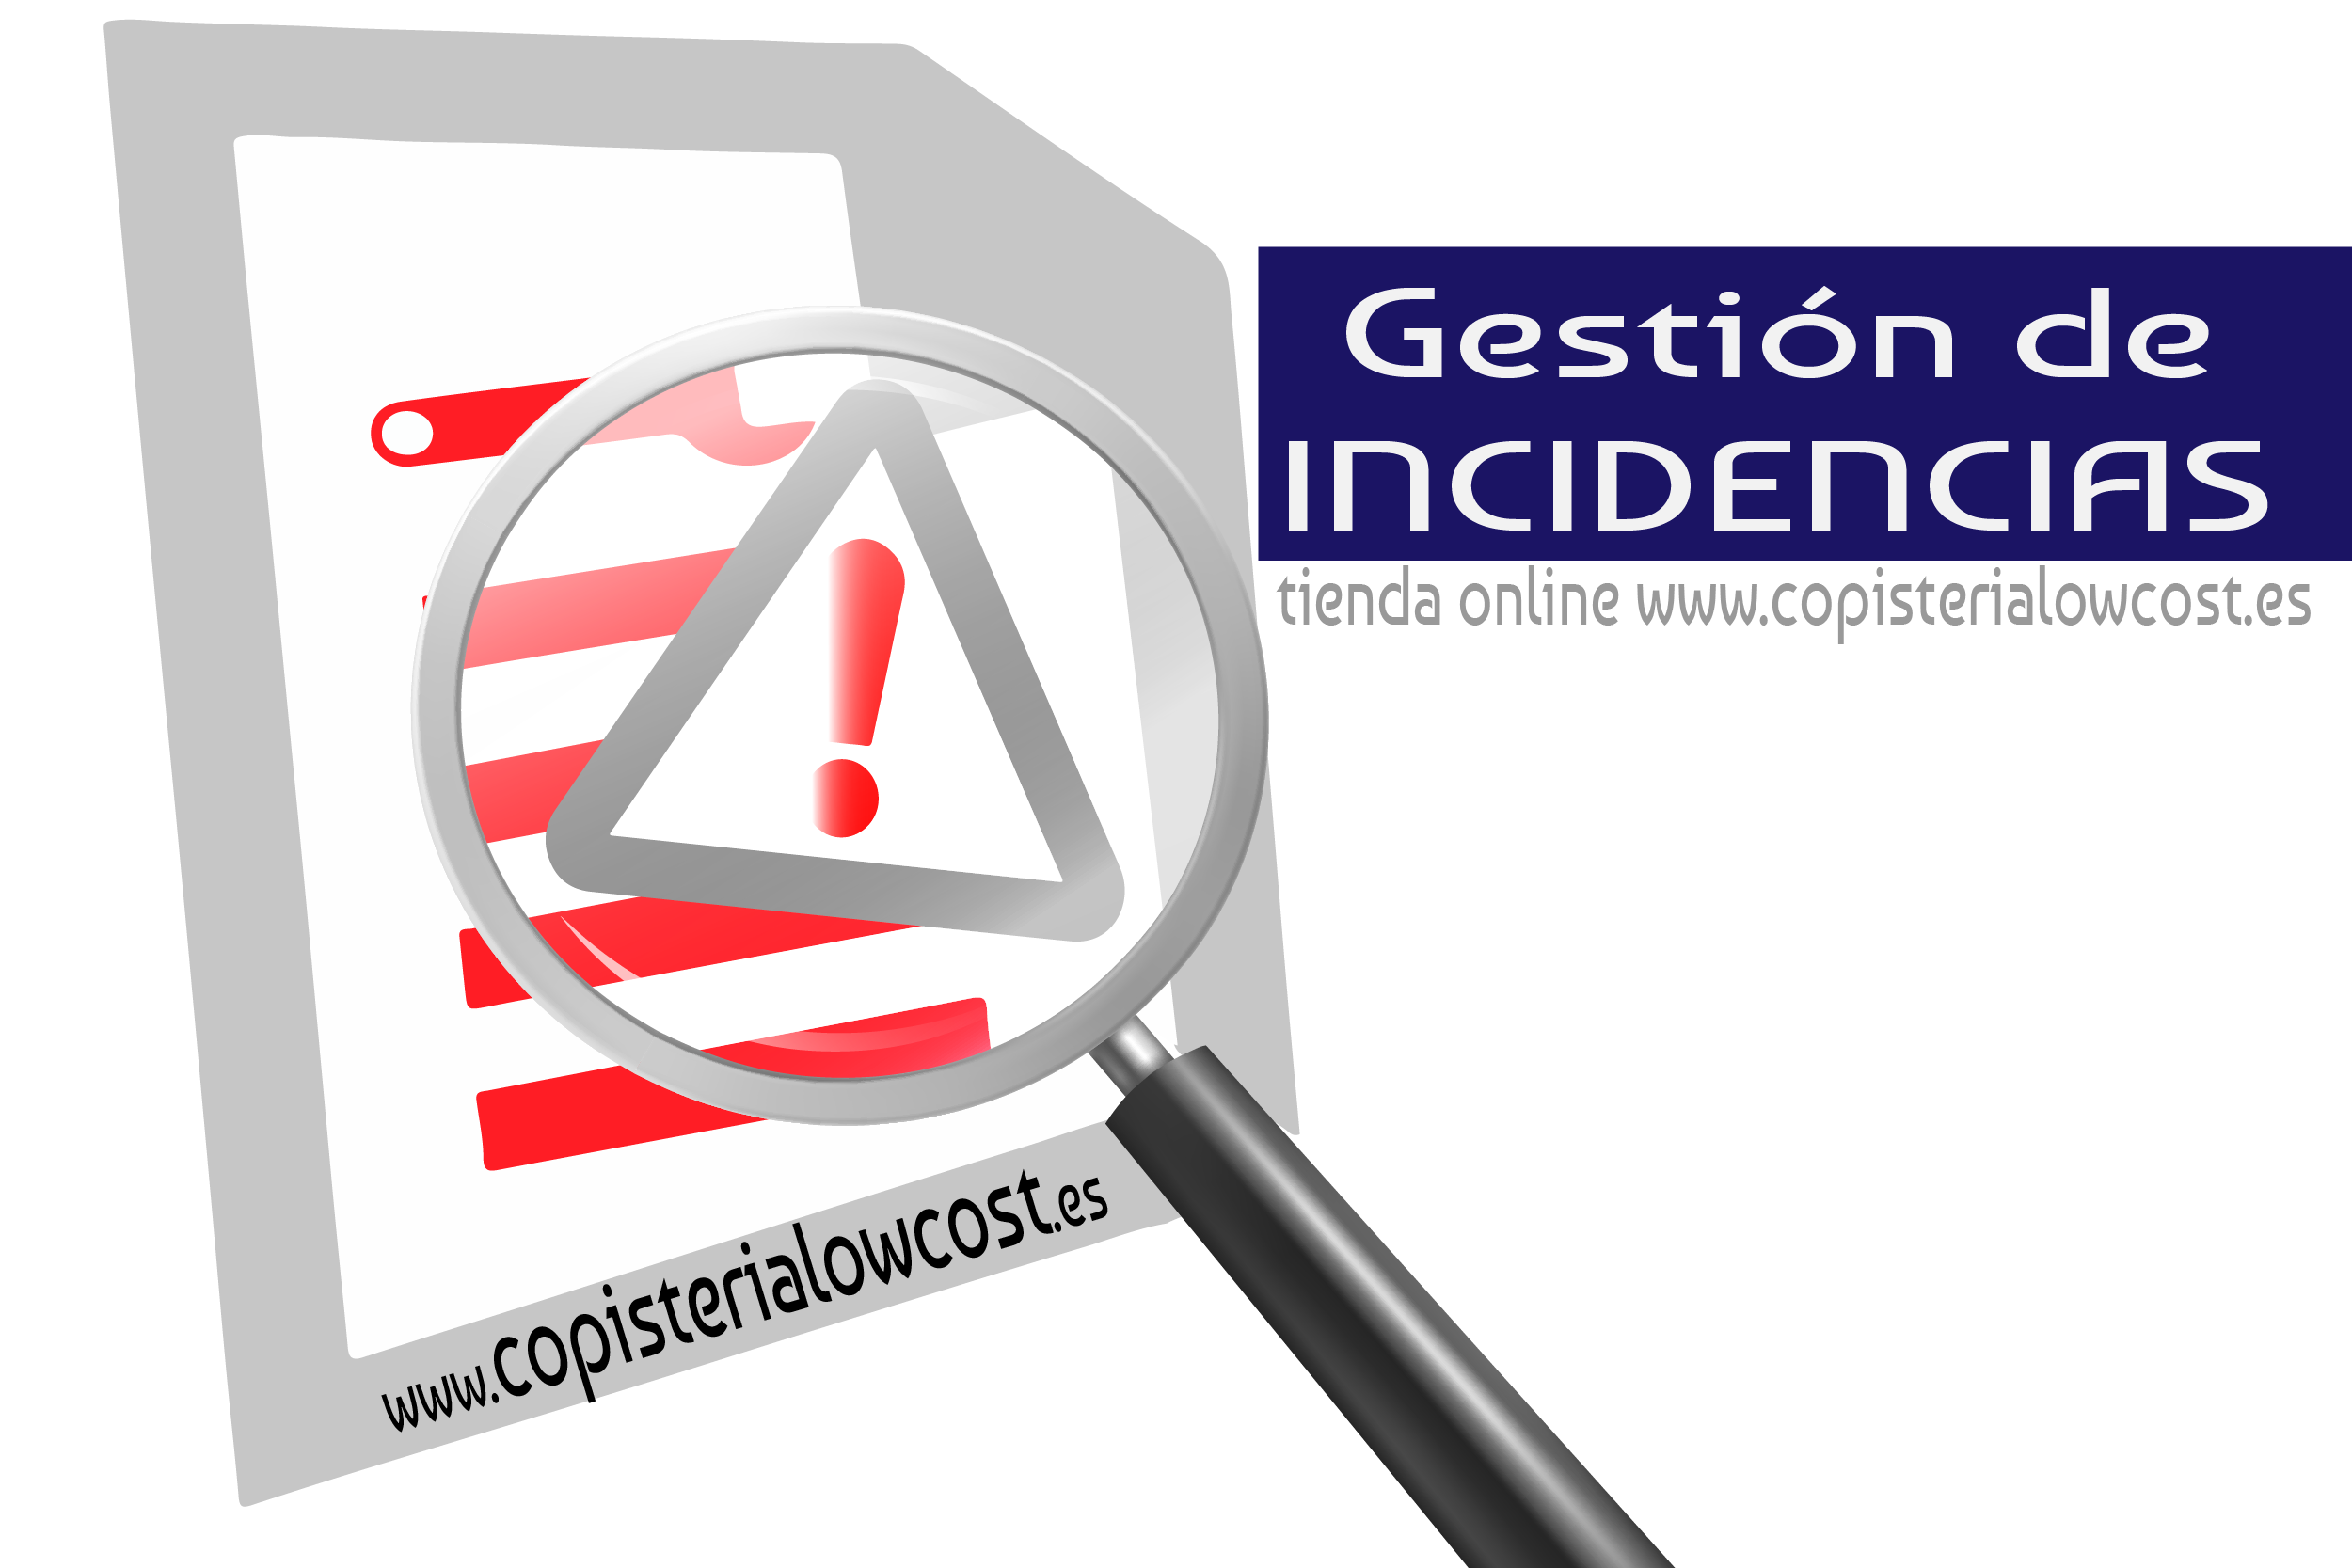 Gestion de incidencias